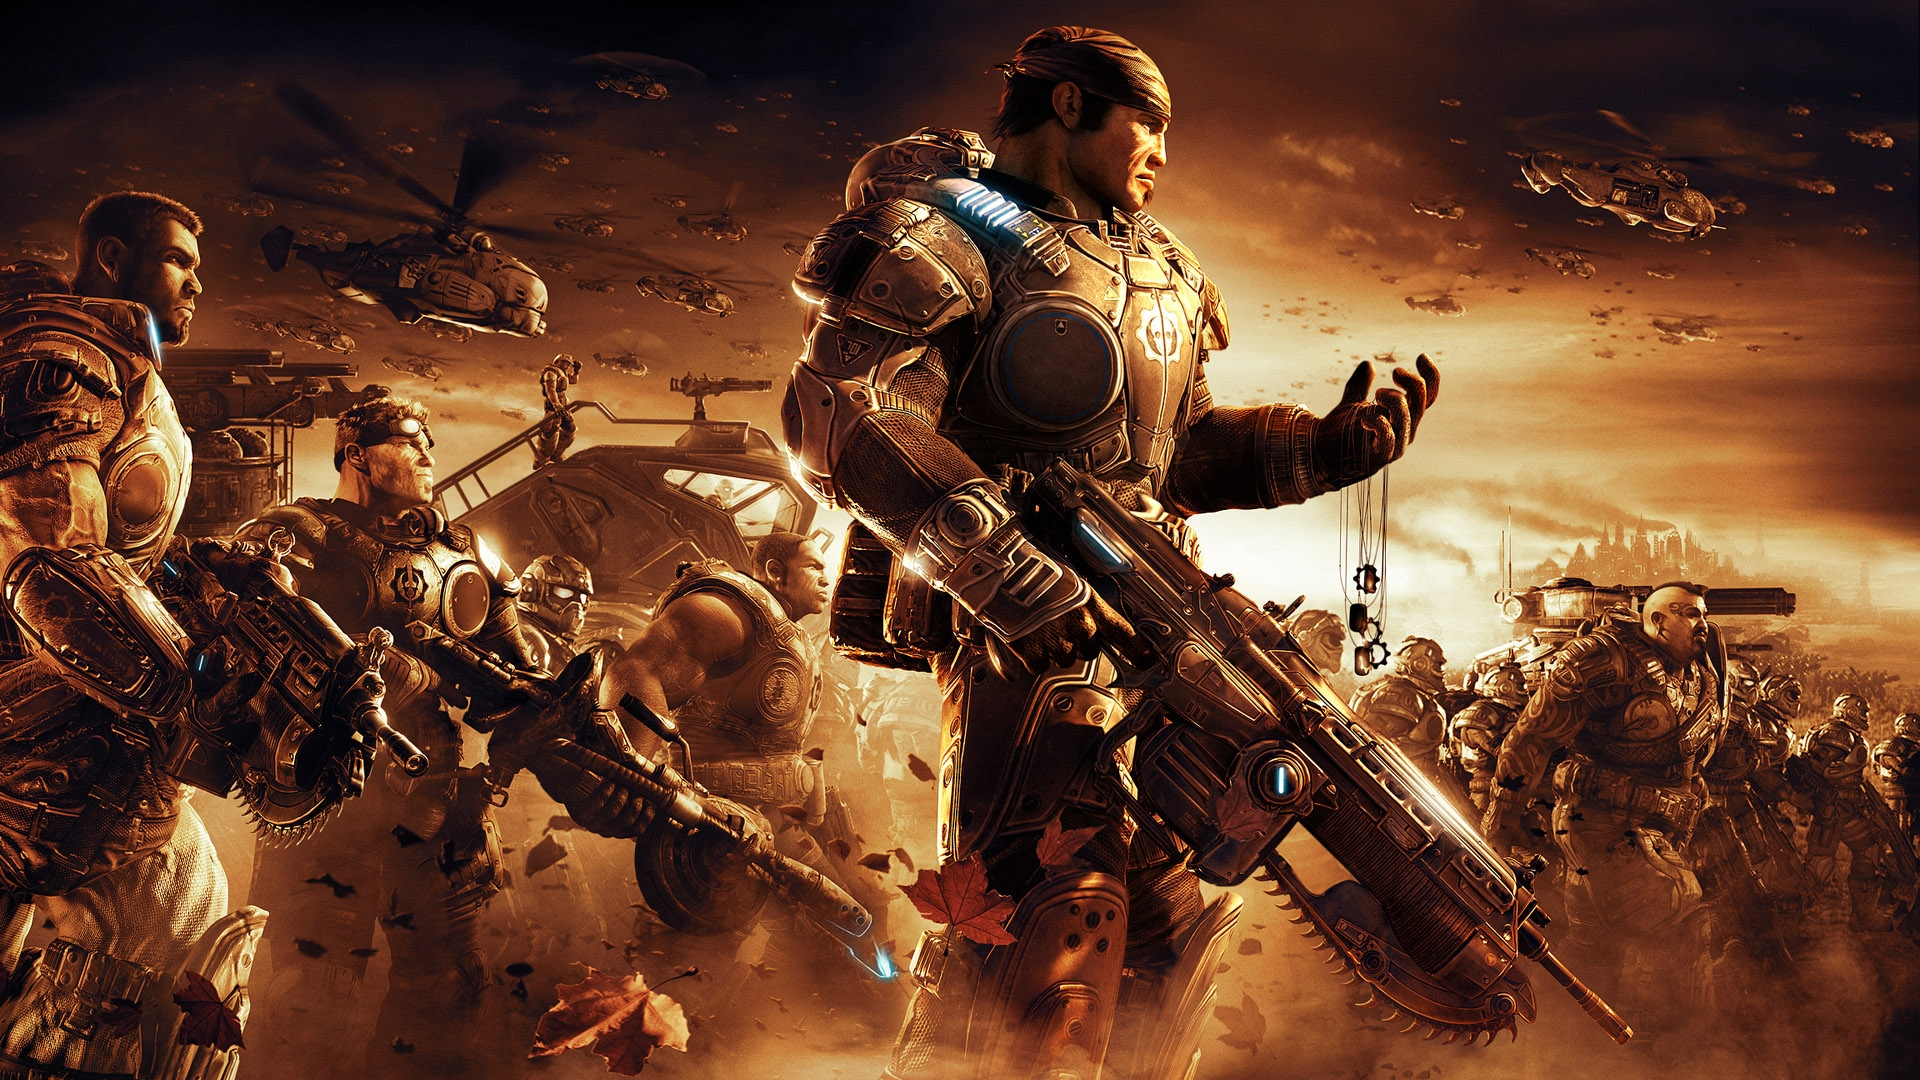 Gears Of War 3 Wallpapers Video Game Hq Gears Of War 3 Pictures